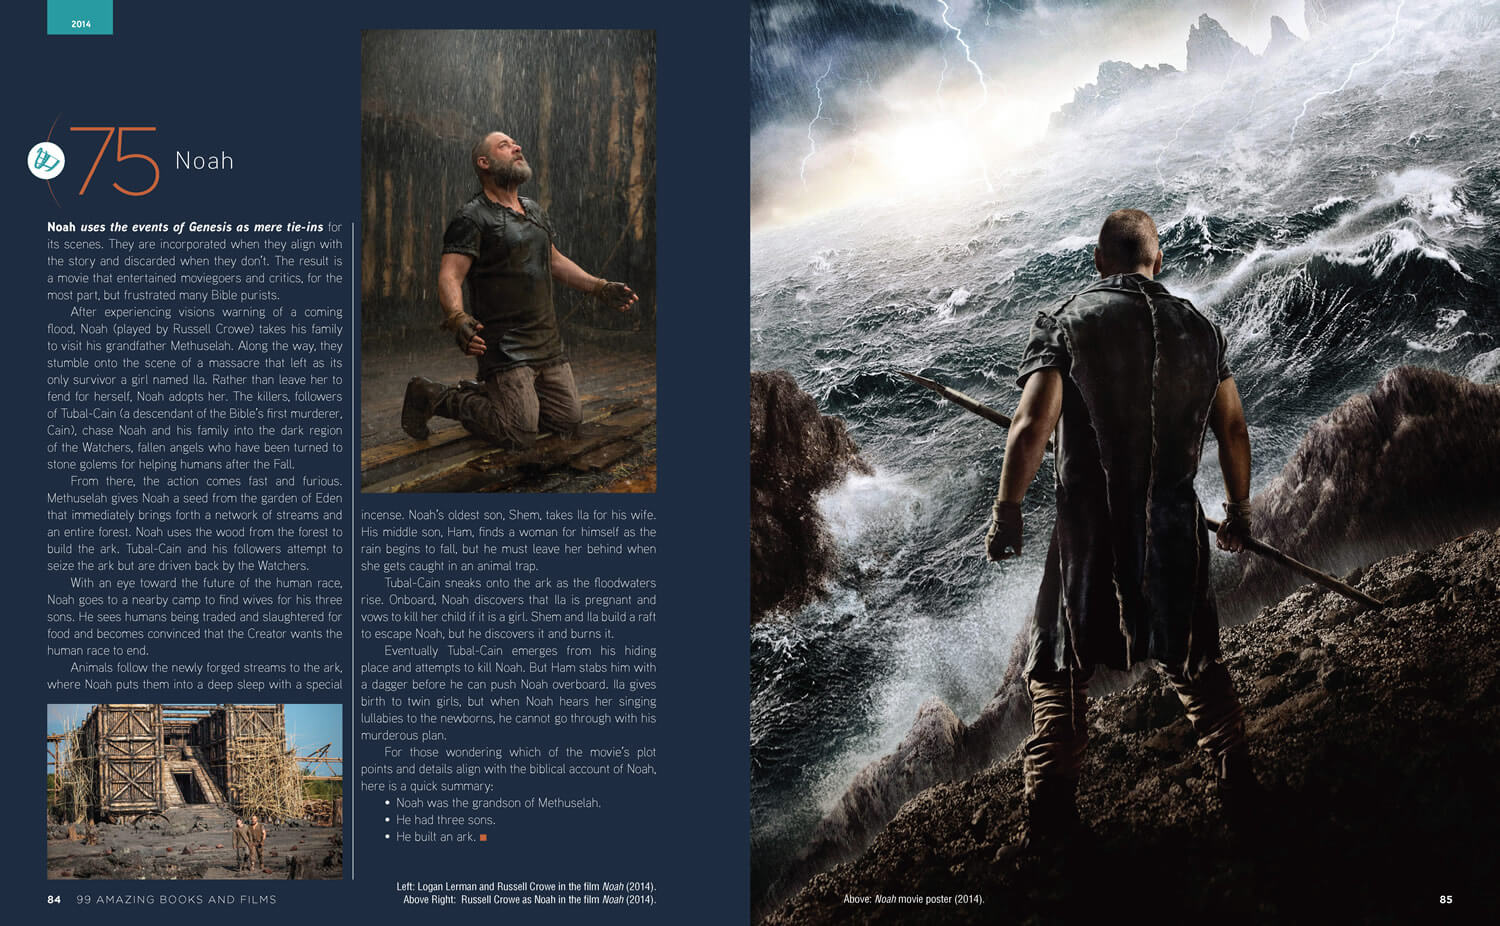 Noah 99 books and film page spread design